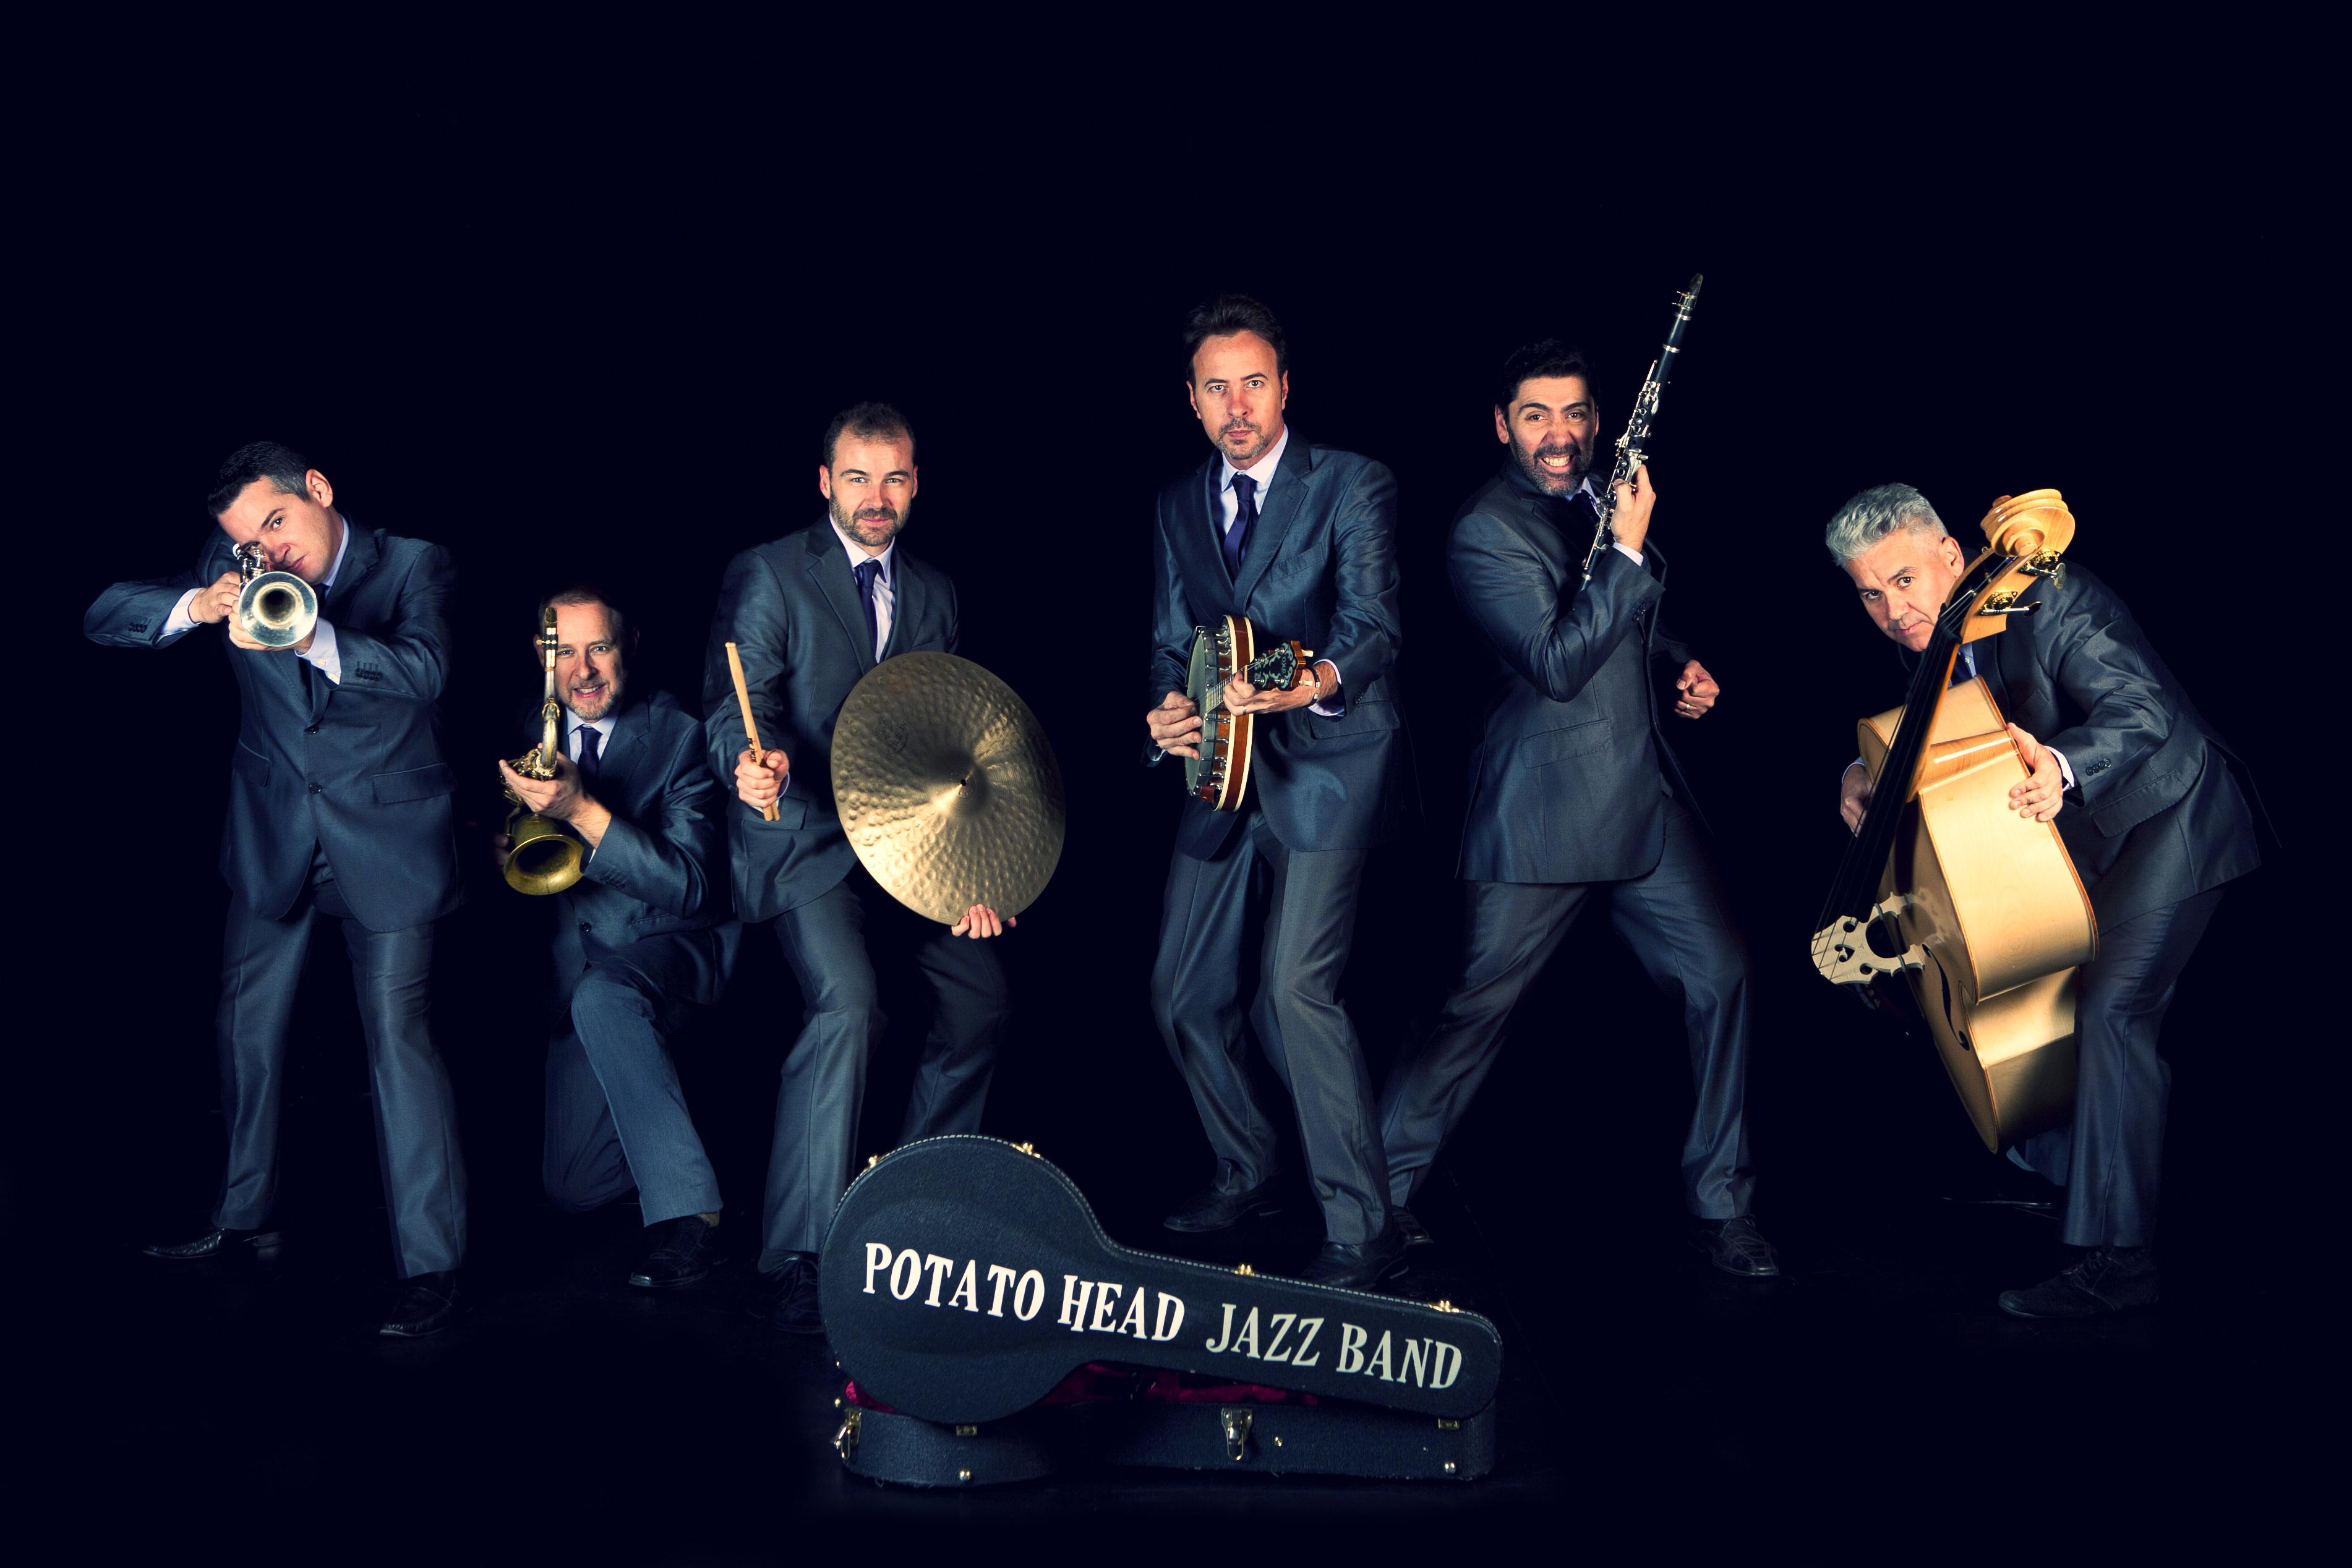 Potato Head Jazz Band - Tapijazz2018 @ Plaza Nueva